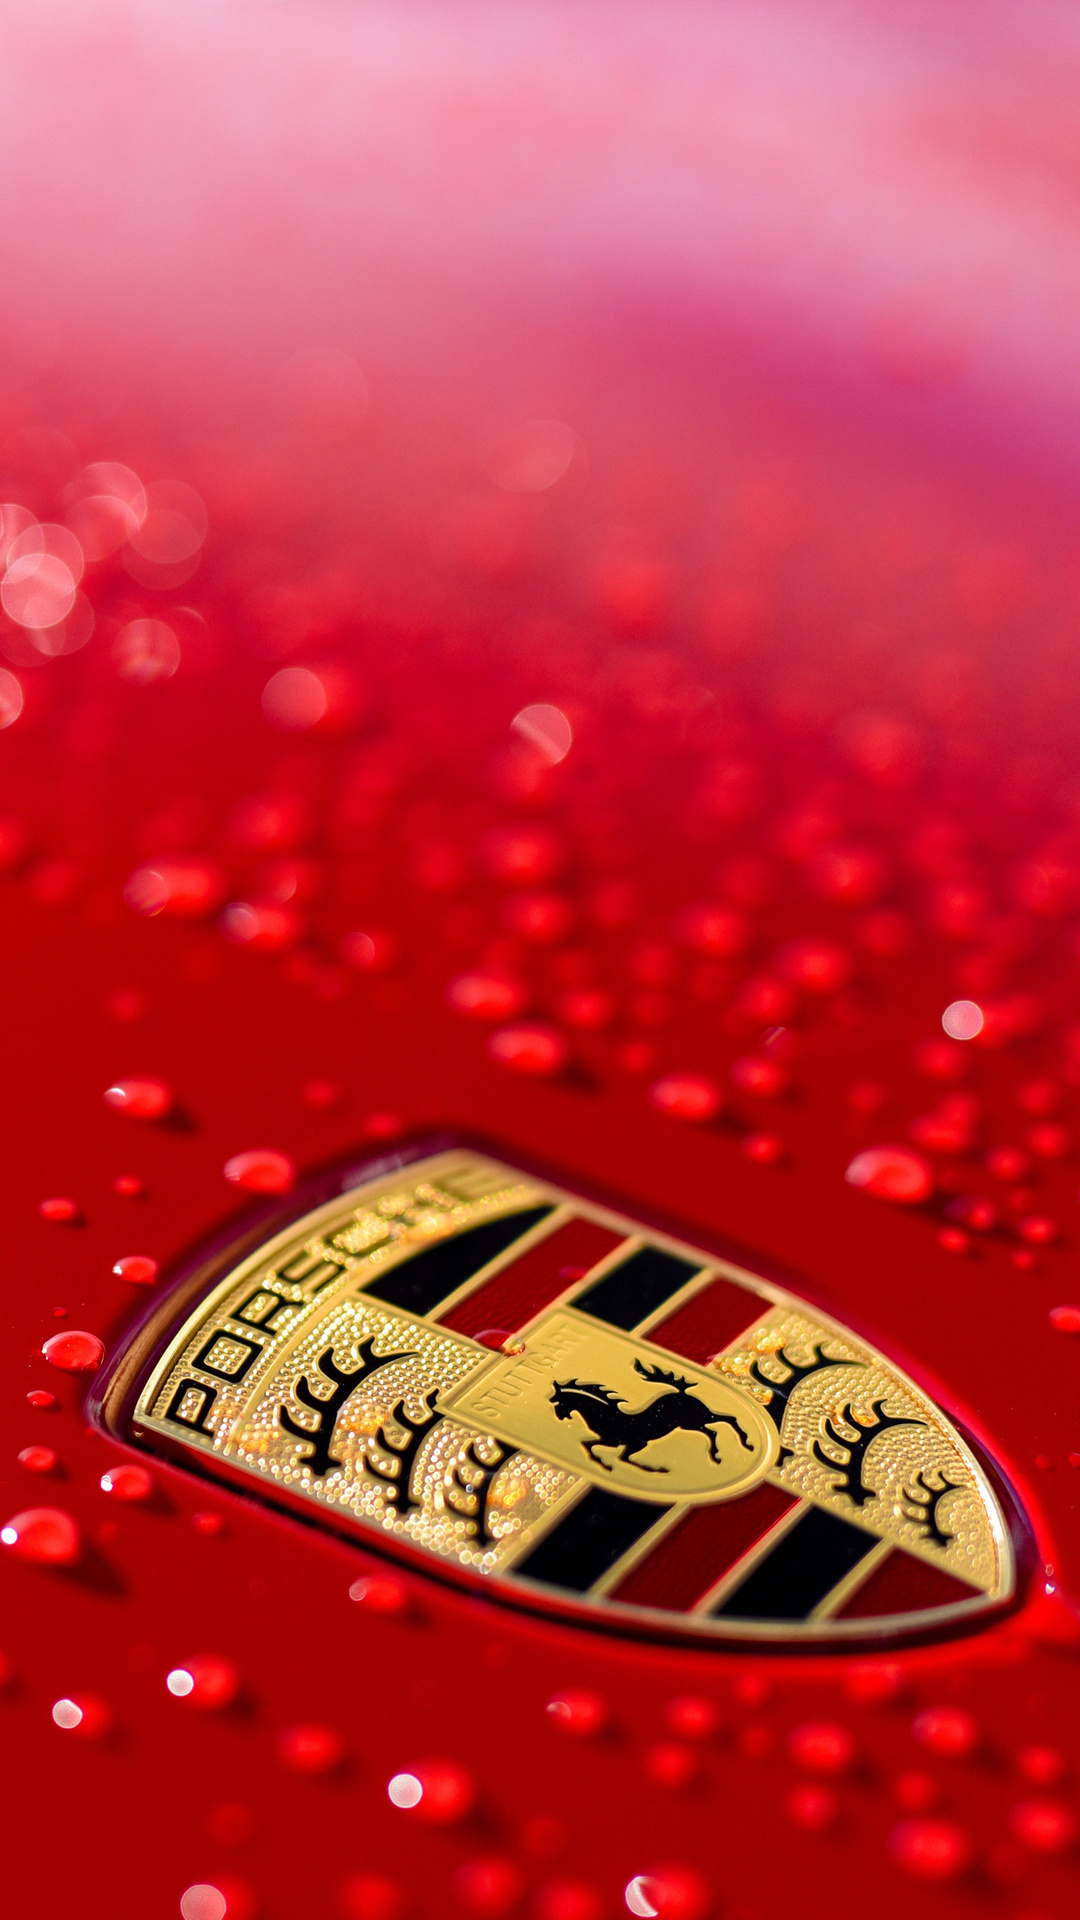 1080x1920 Porsche Logo 4k Iphone 7 6s 6 Plus Pixel Xl One Plus 3 3t 5 Hd 4k Wallpapers Images Backgrounds Photos And Pictures